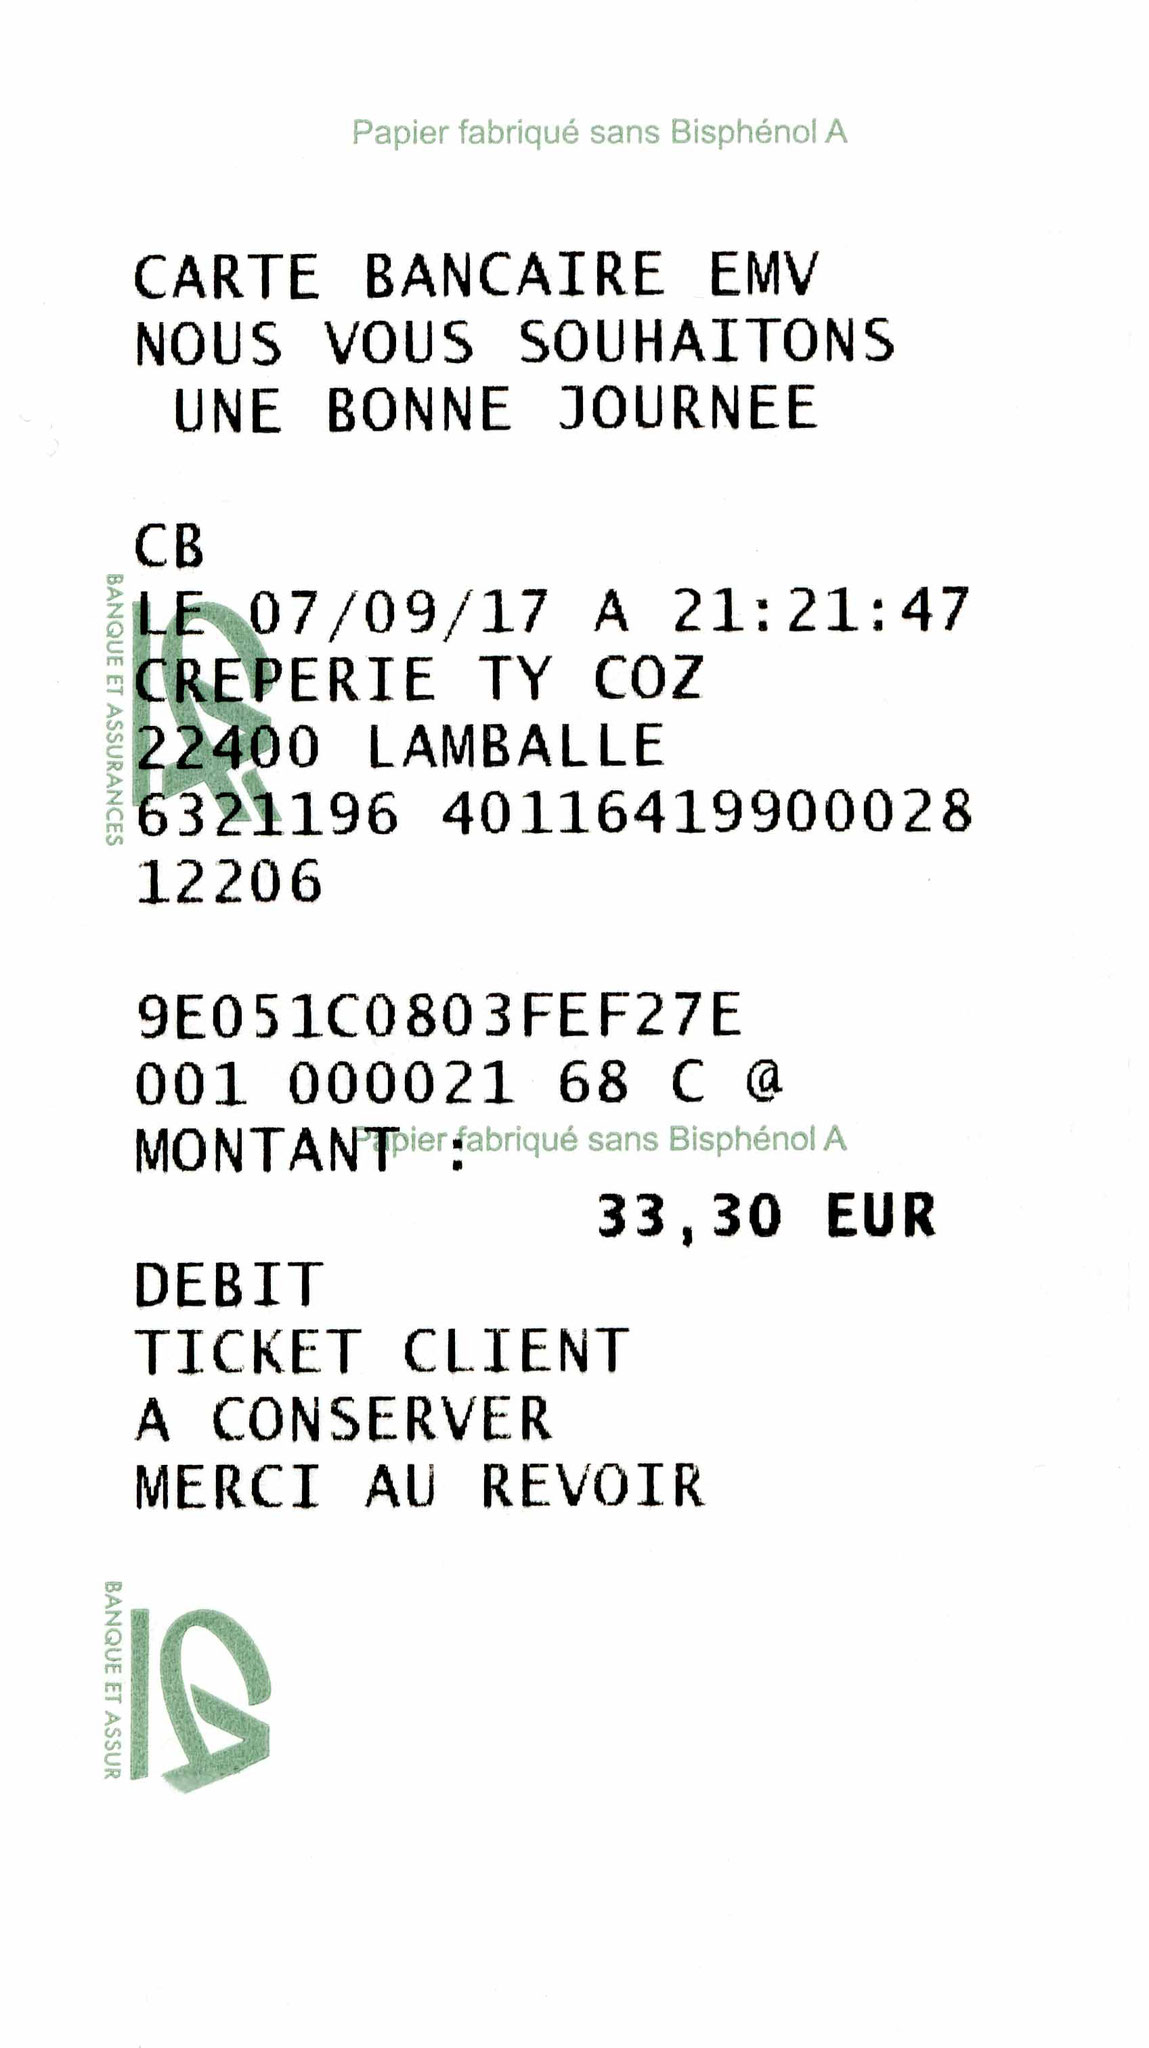 Faute de note, le ticket de CB